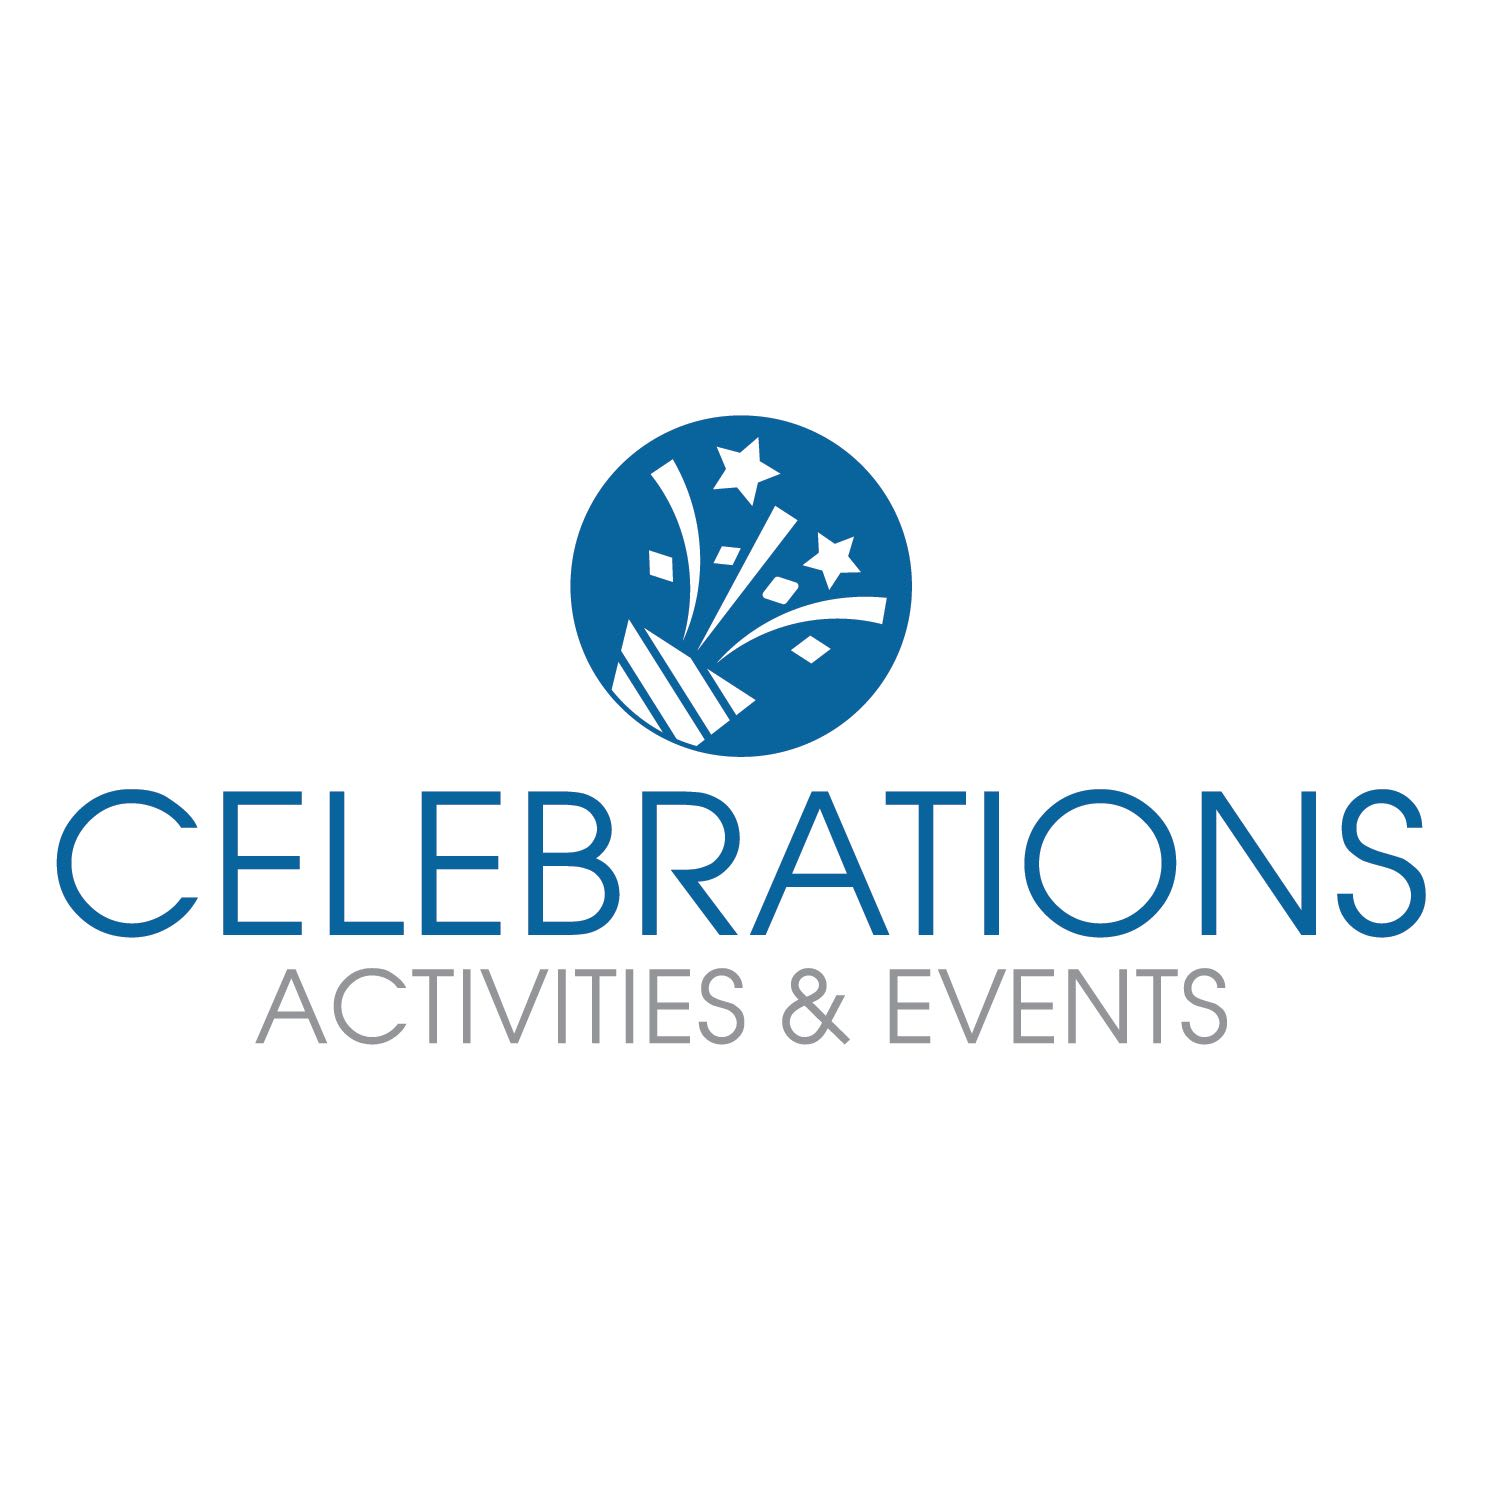 Activity and event celebrations